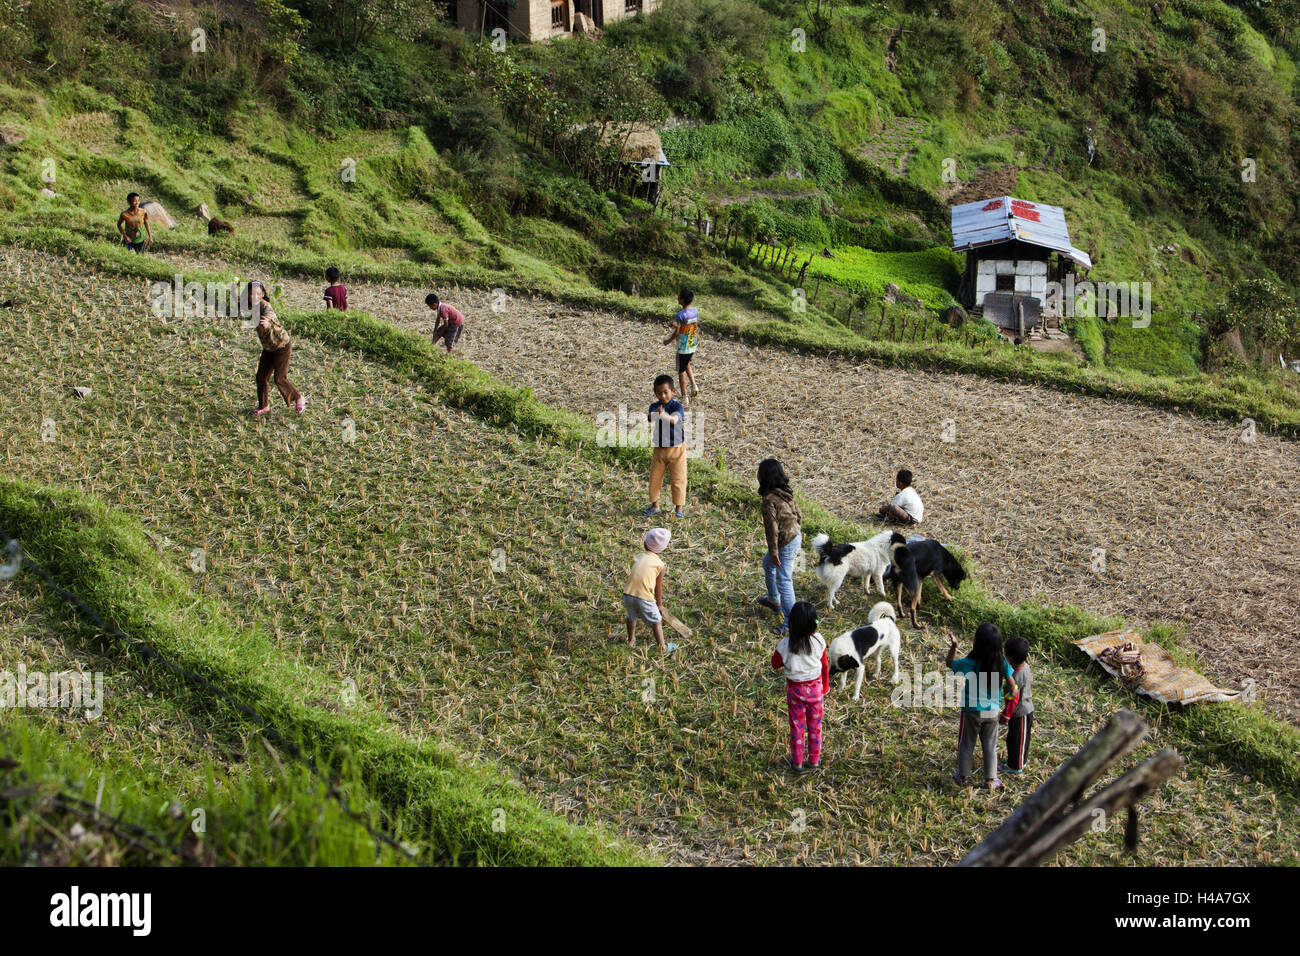 Kingdom of Bhutan, children playing on rice field, - Stock Image